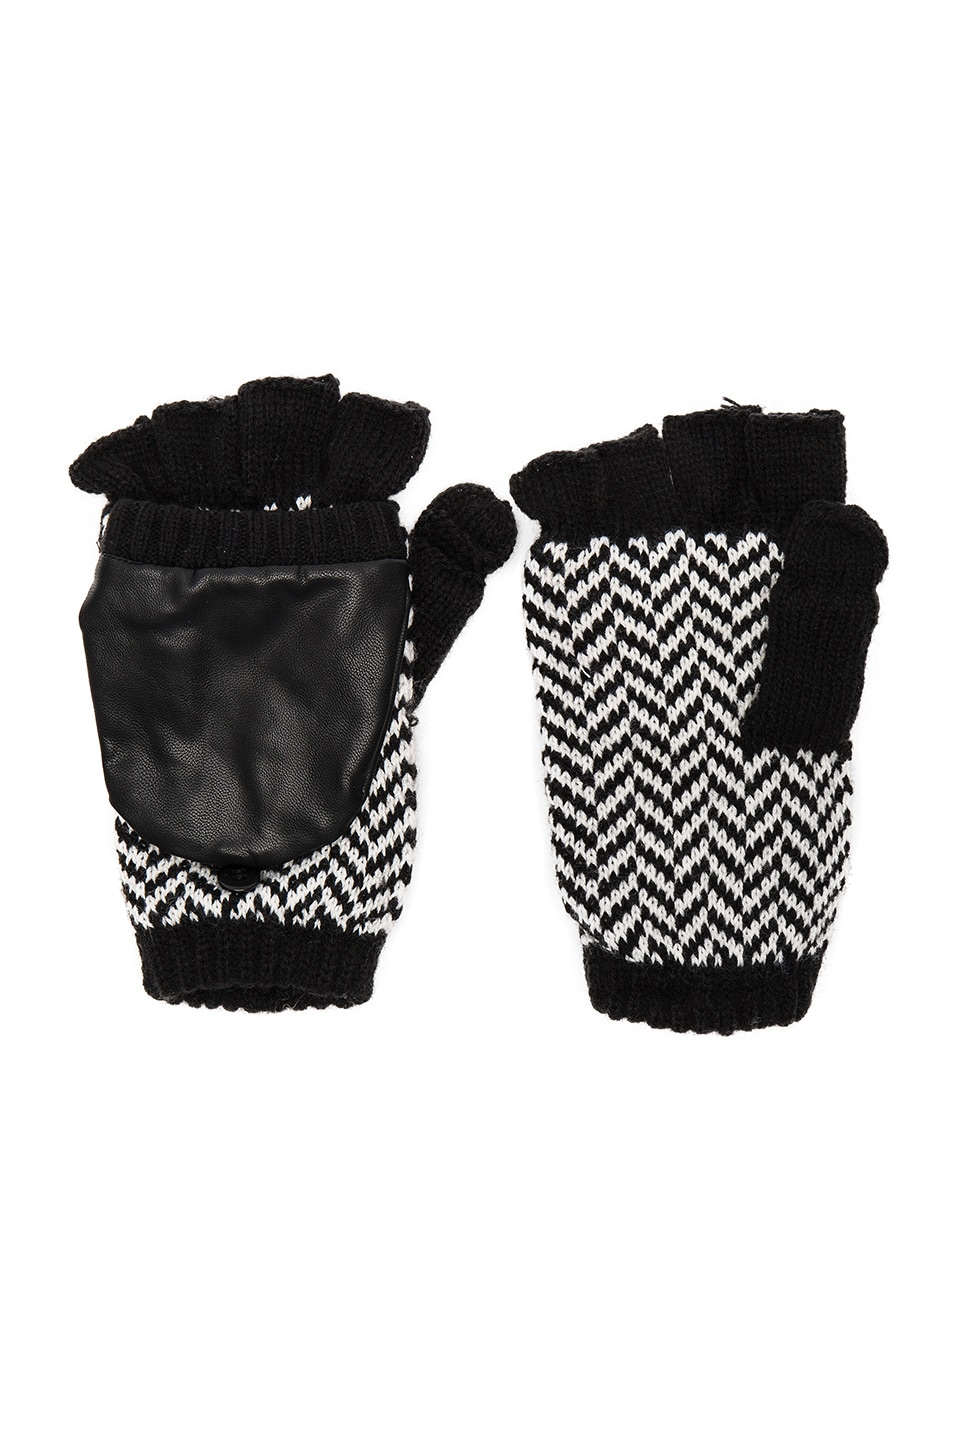 Herringbone Texting Mittens by Plush